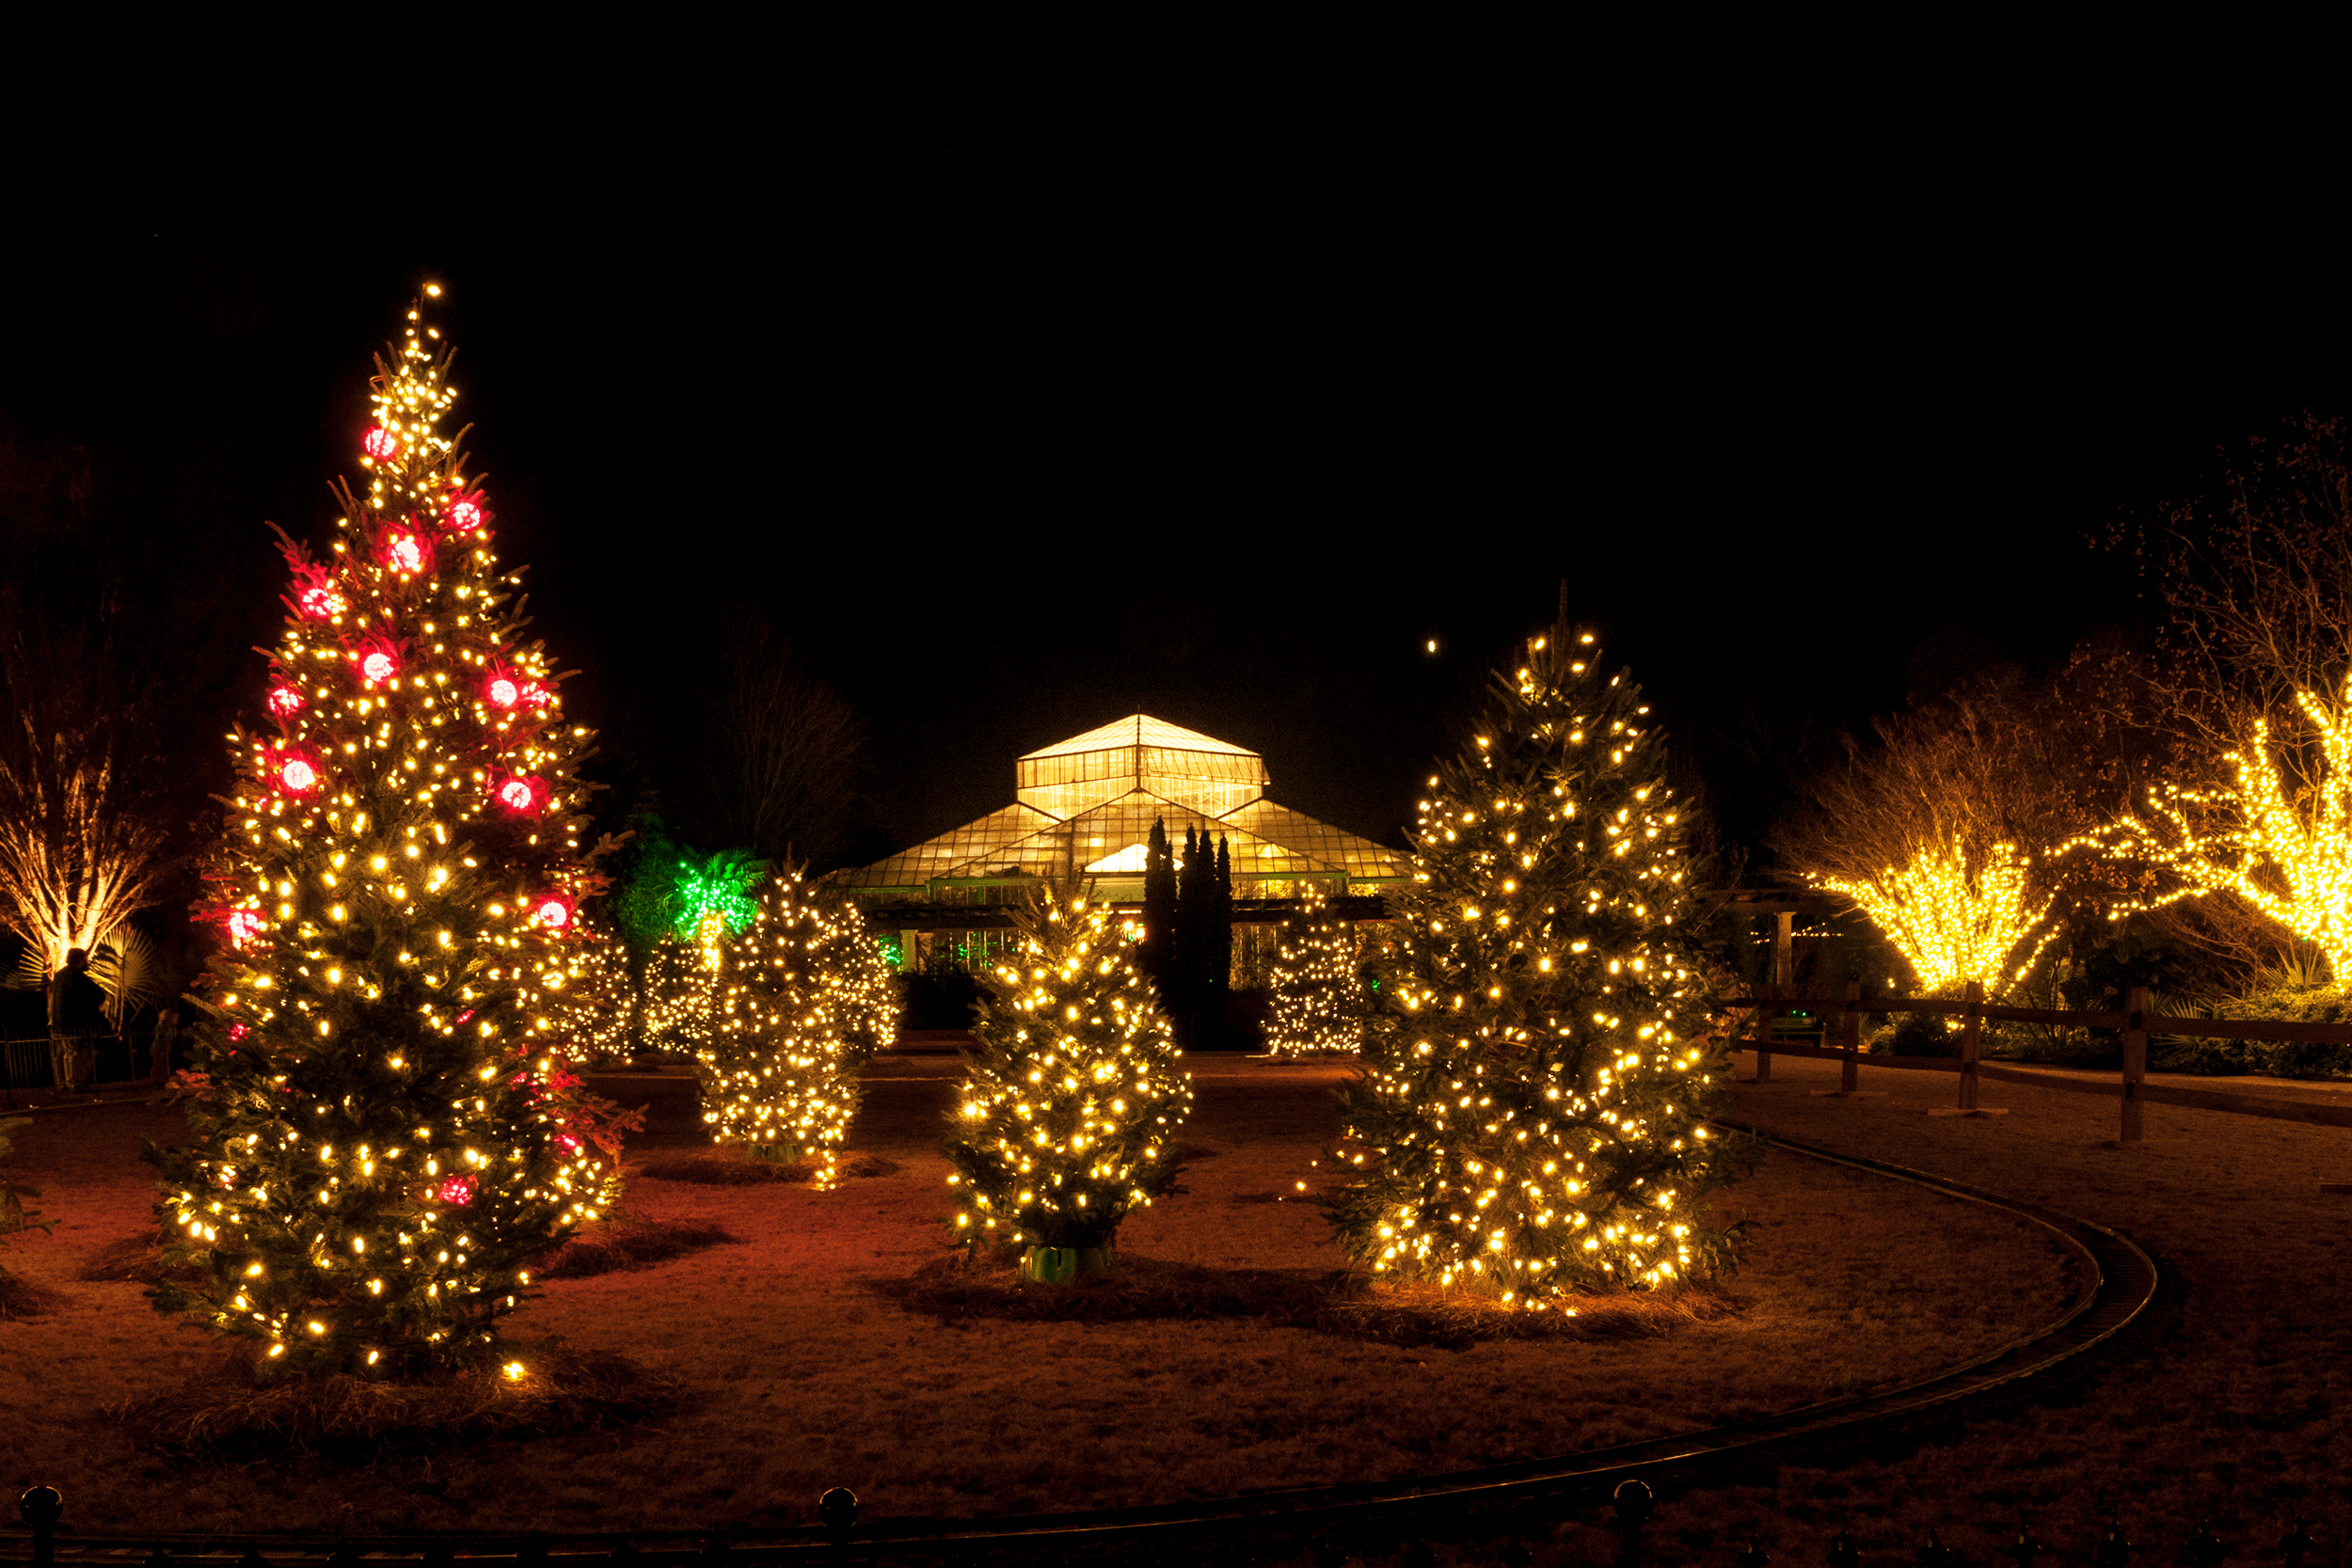 This is truly a festival of lights.